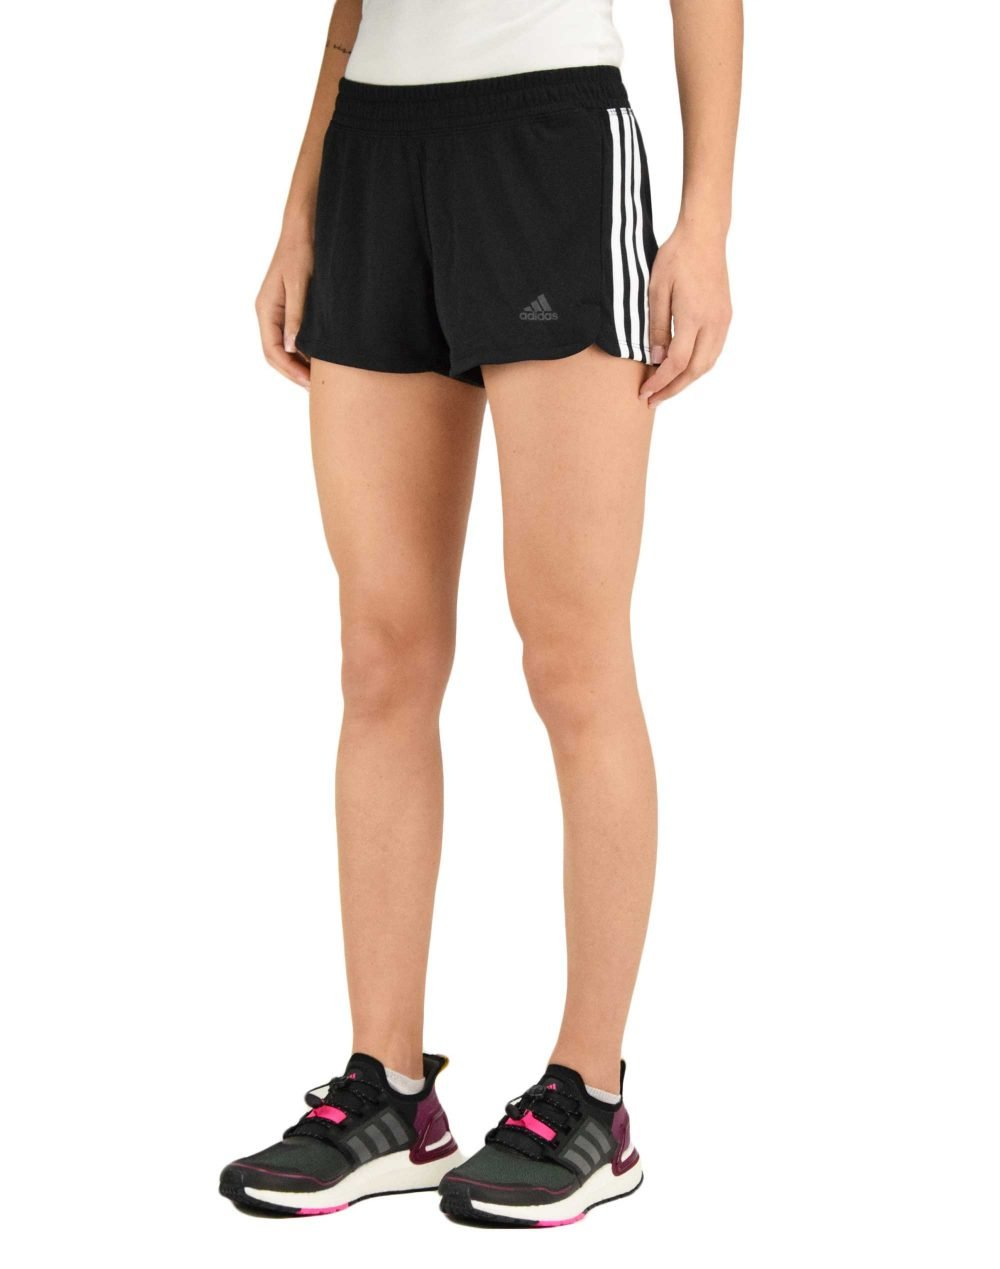 Adidas Pacer 3S Knit Shorts (DU3502) Black/White